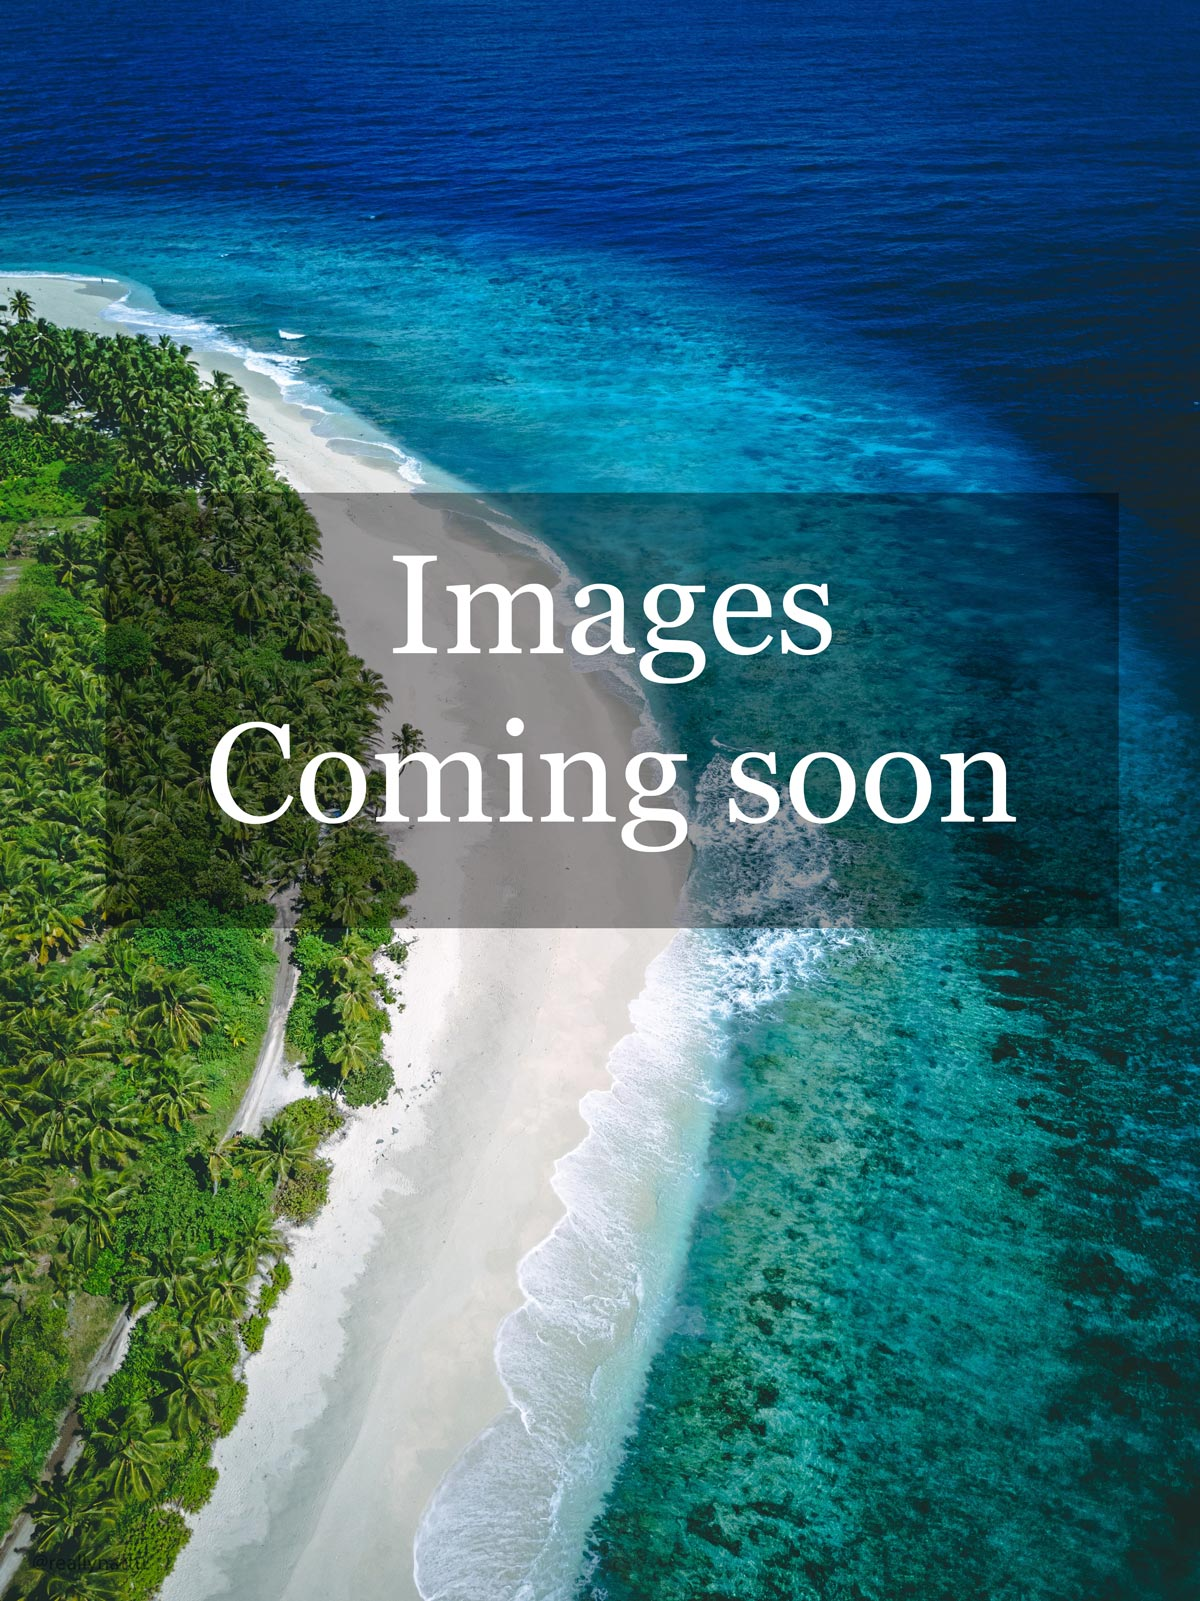 images-coming-soon